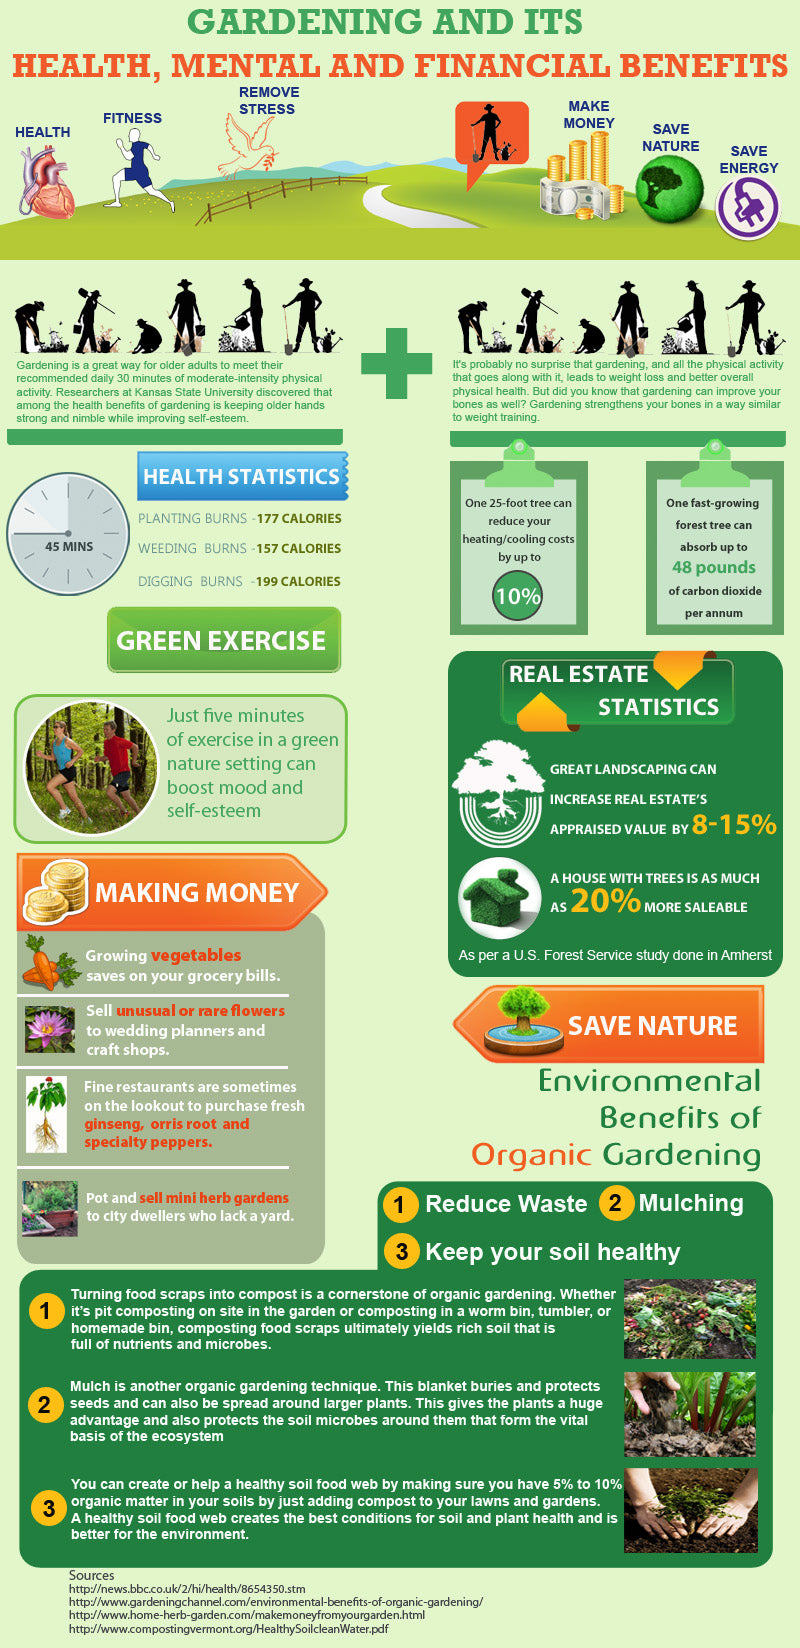 Cool Ways Gardening Can Make Your Life Better; The benefits of gardening